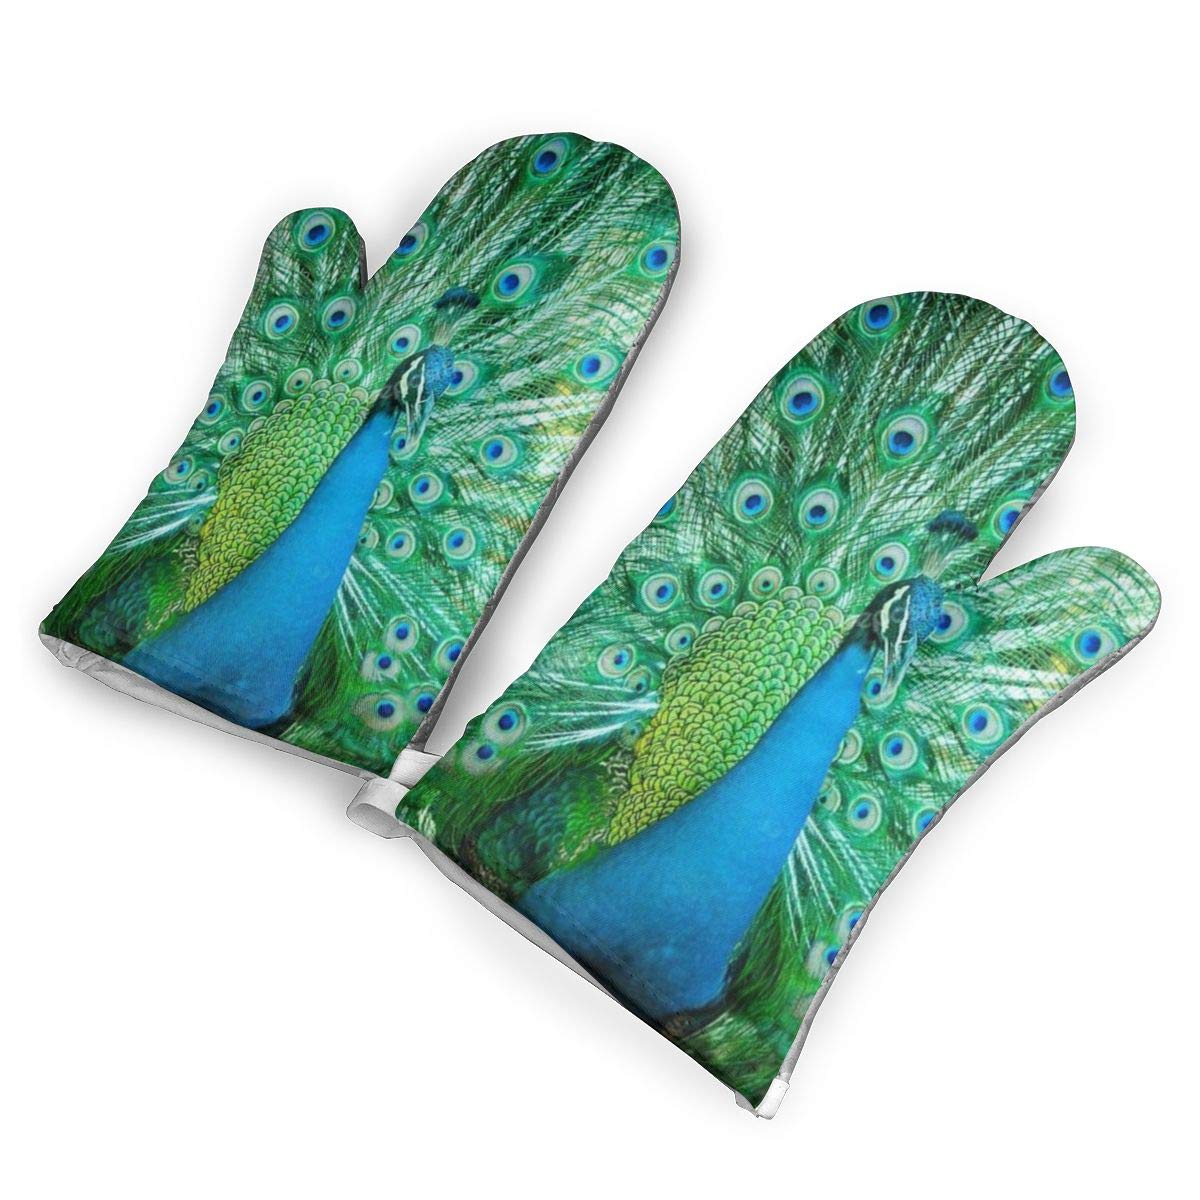 Peacock with Feathers Oven Mitts,Professional Heat Resistant Microwave Oven Insulation Thickening Gloves Baking Pot Mittens Soft Inner Lining Kitchen Cooking